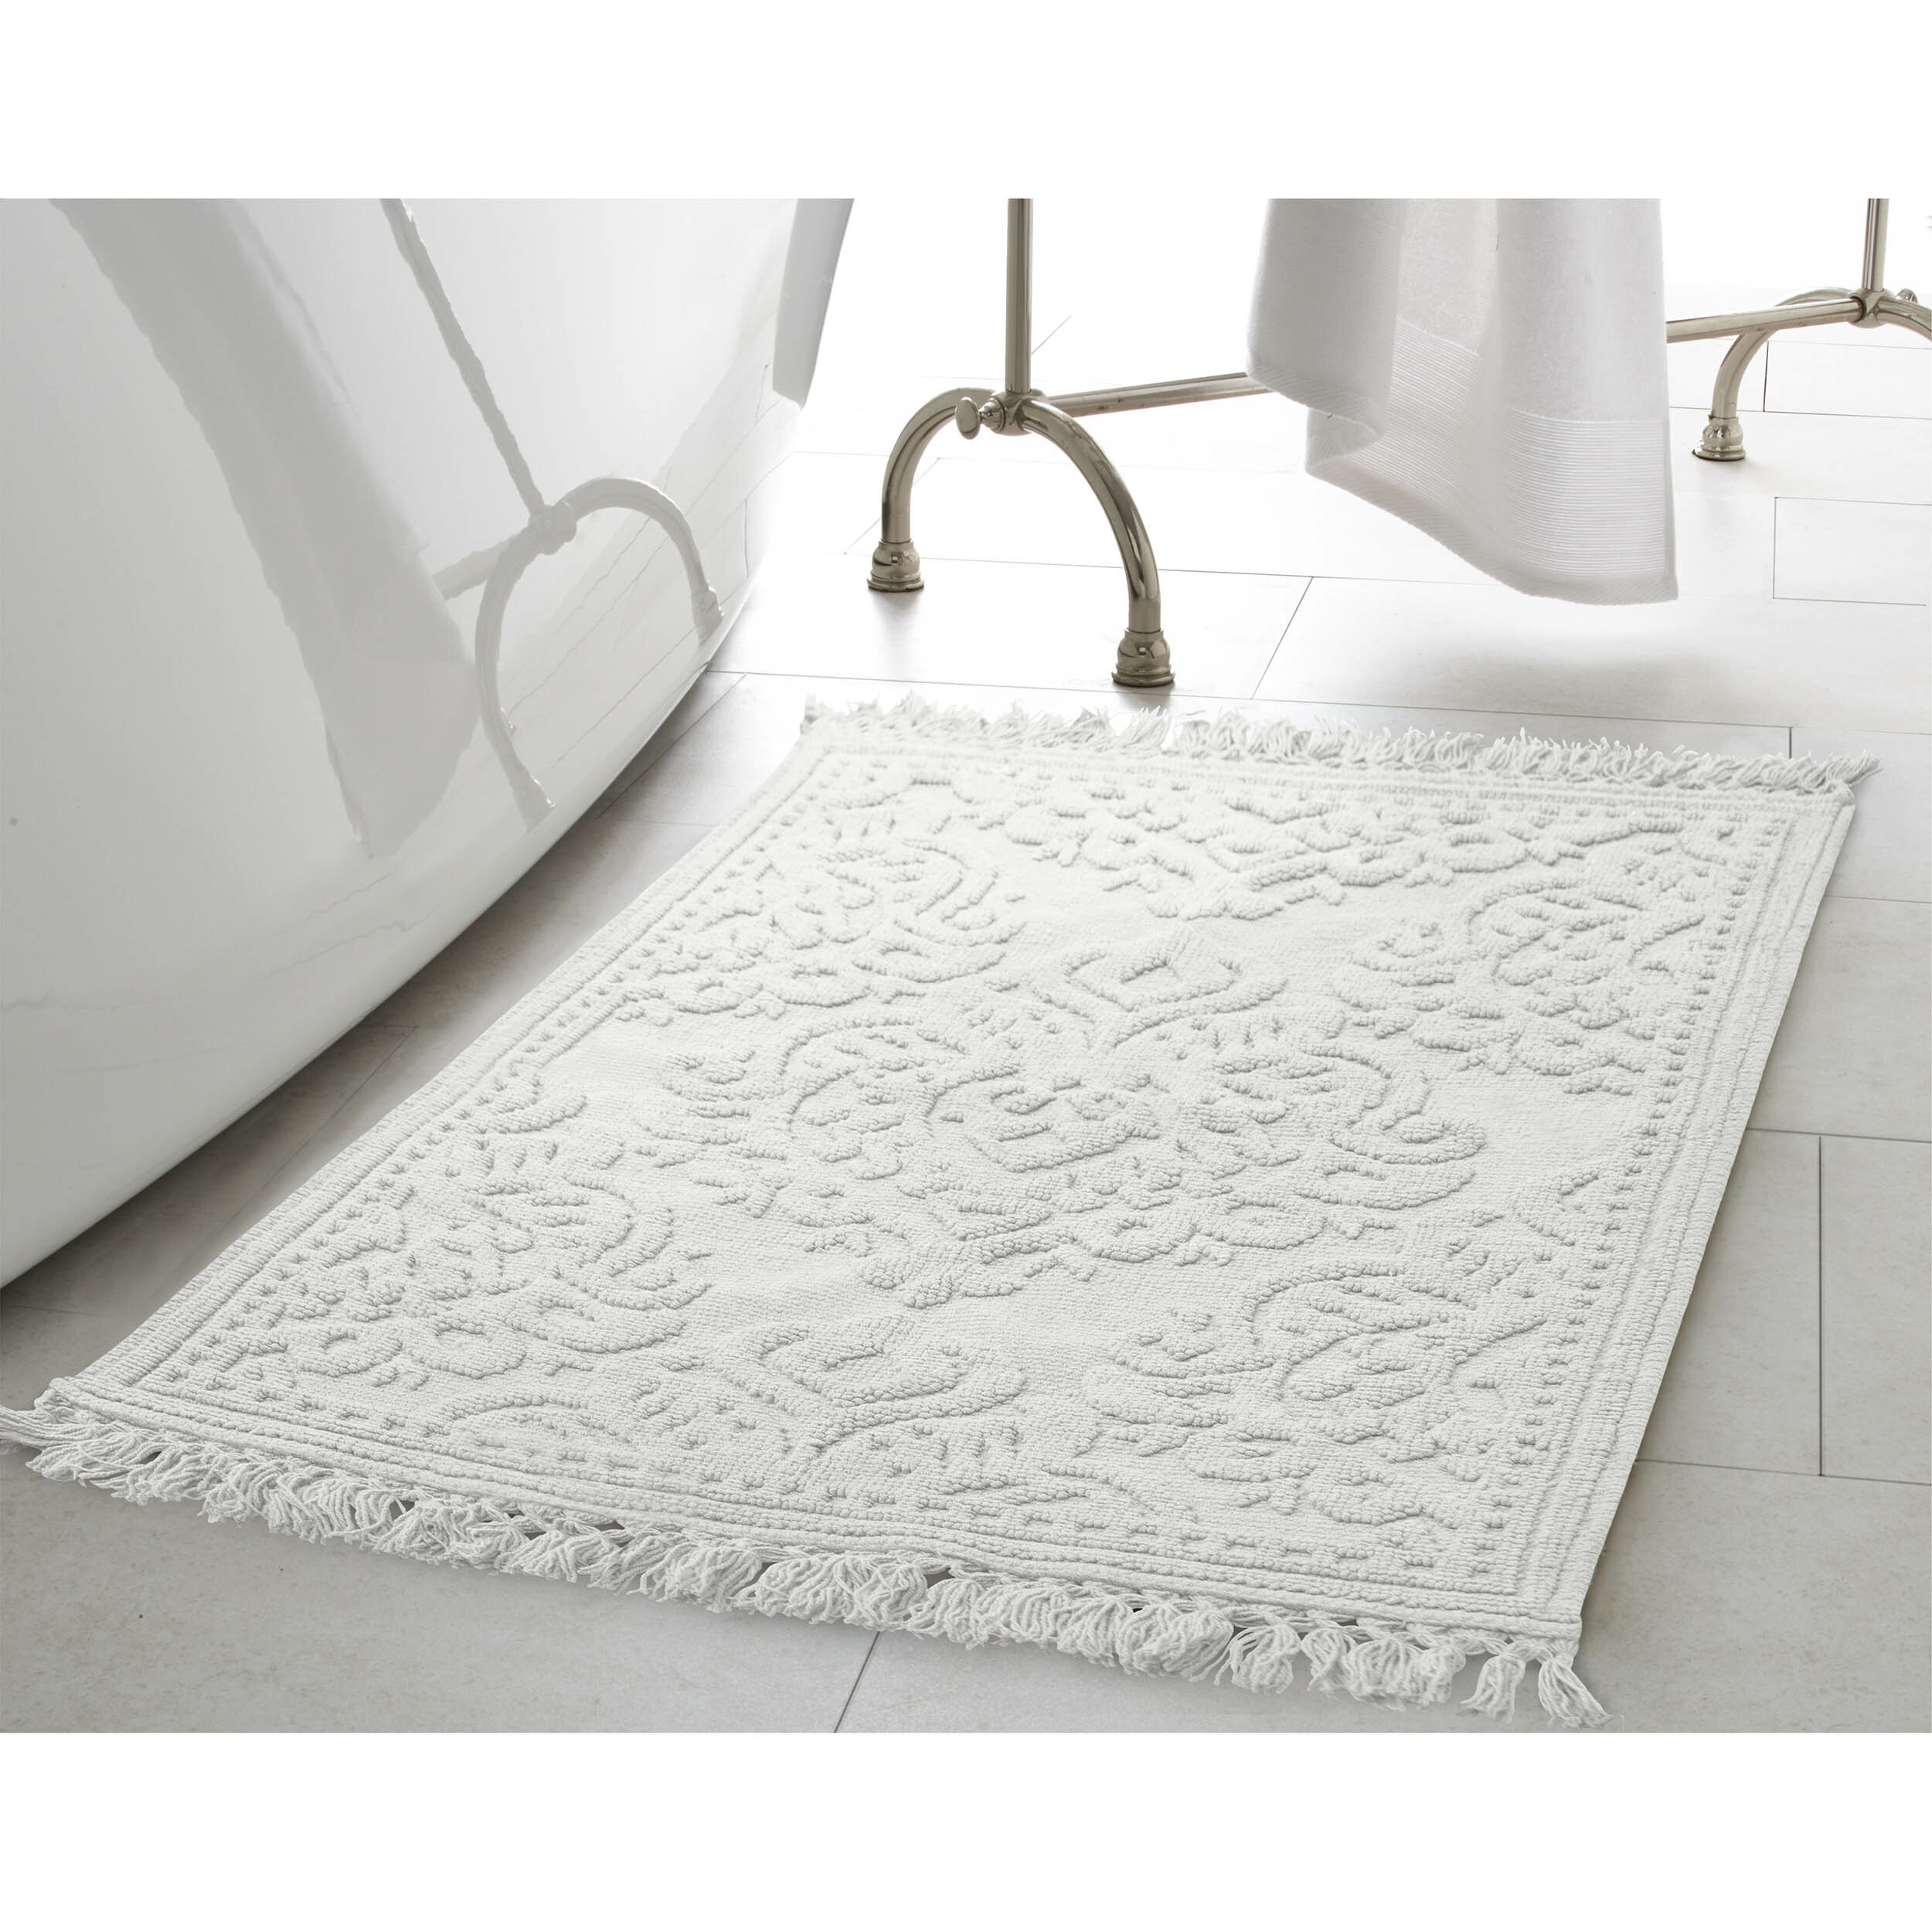 for bath pcs your wooden piece unique set mesmerizing with luxury and design wall mat floor ceramic color assorted gray bathroom rug beautiful